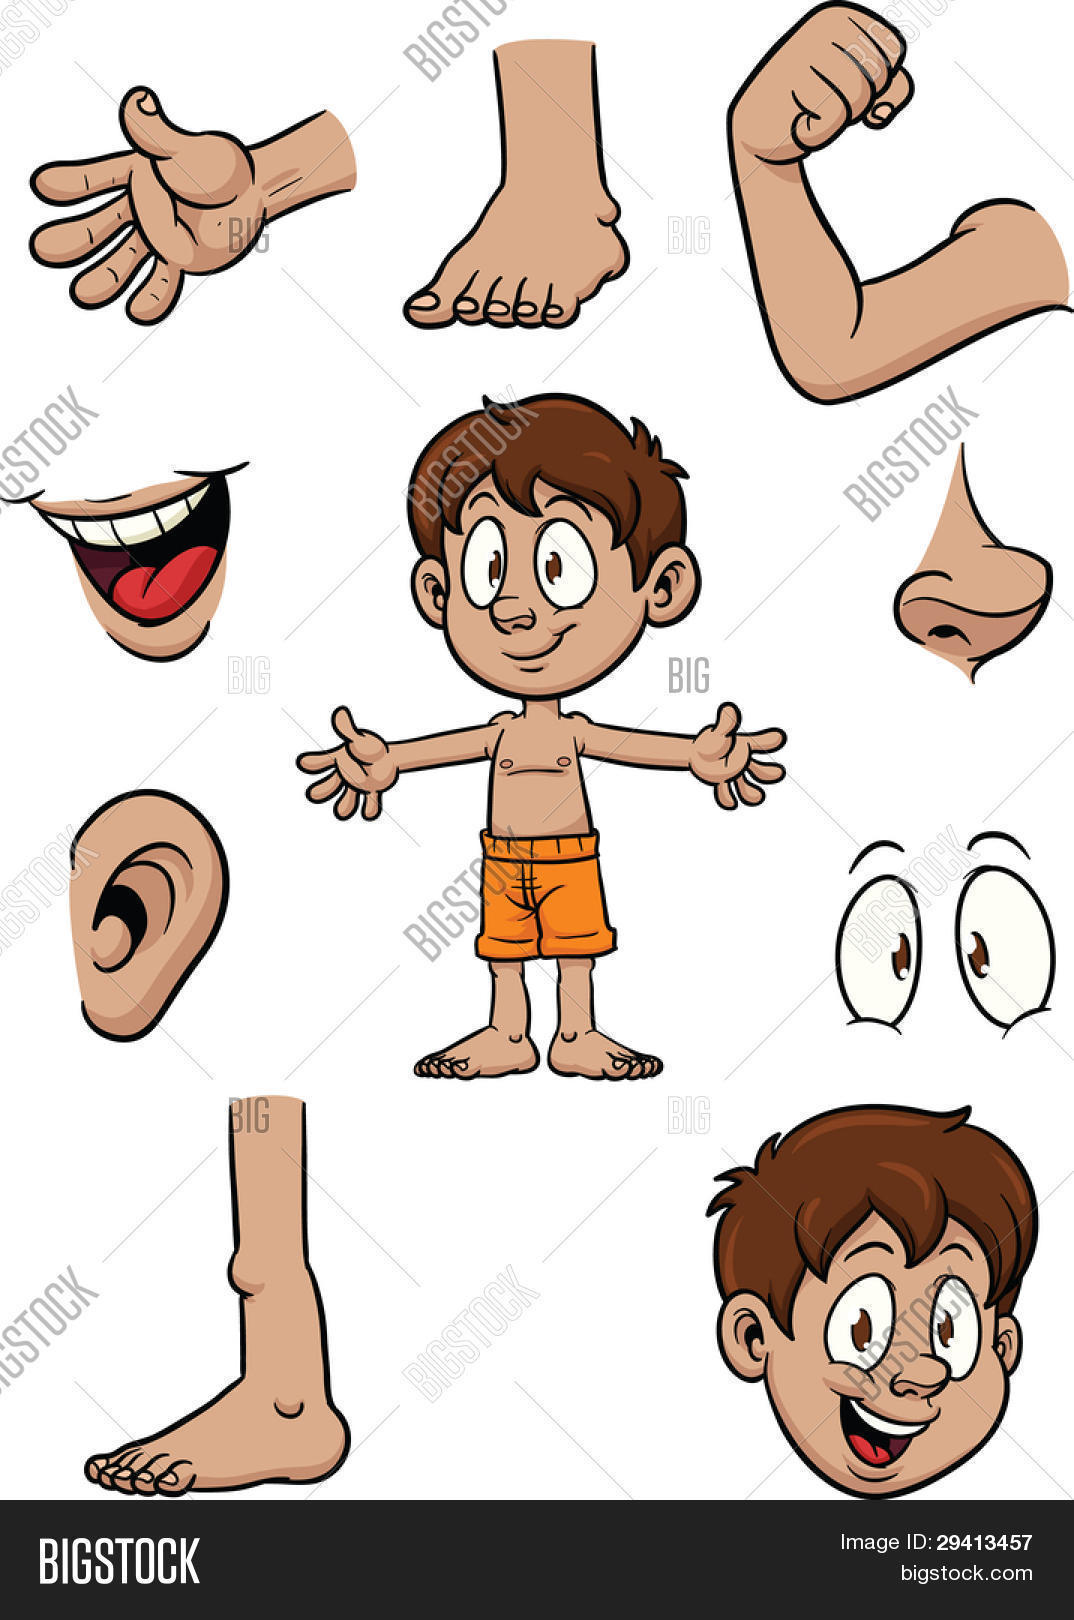 Cartoon Kid And Body Parts Vector Illustration With